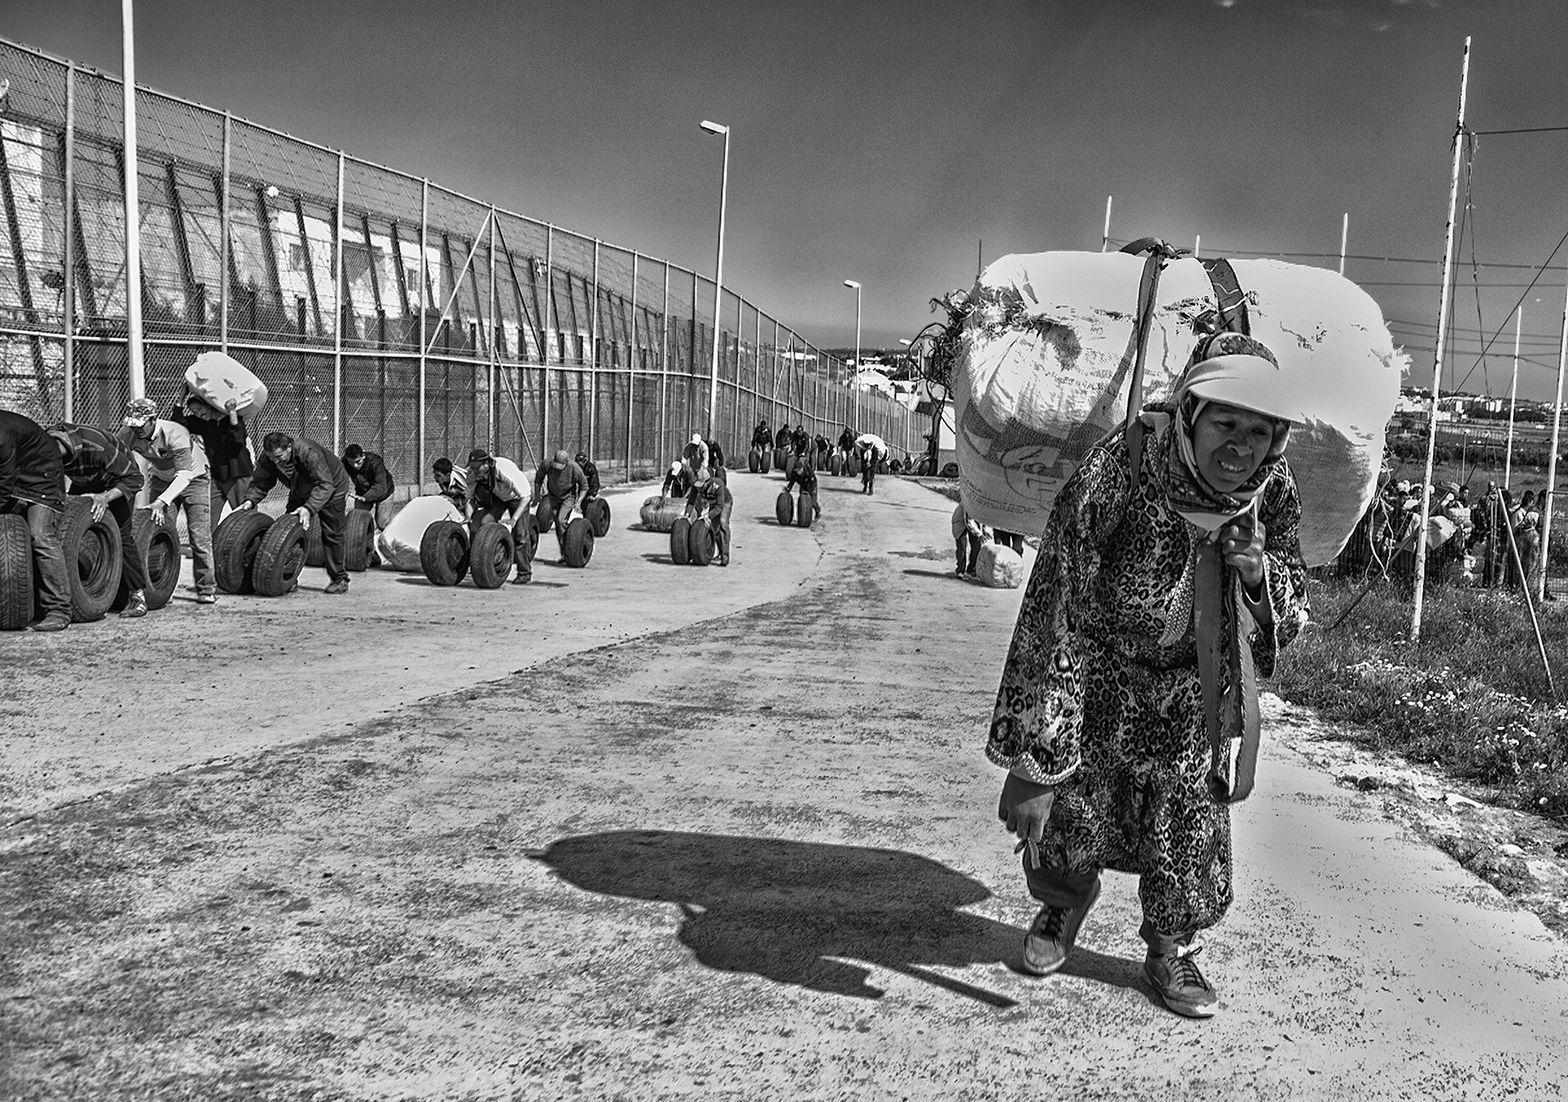 A woman walks towards the border with a heavy pack on her back, while a group of men push tires. Melilla. Spain